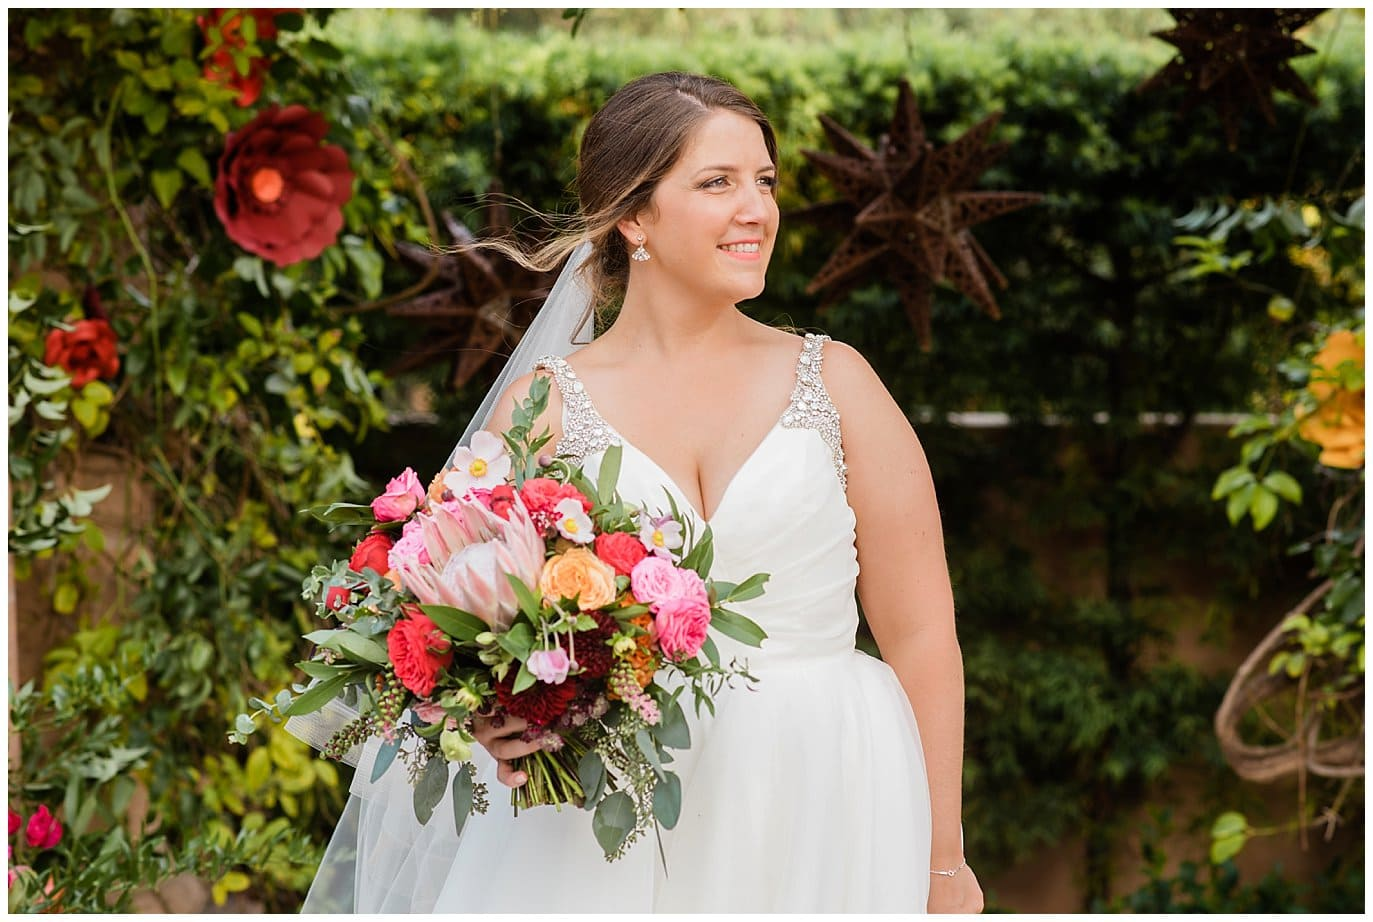 california bride with colorful wedding bouquet and hayley paige dress